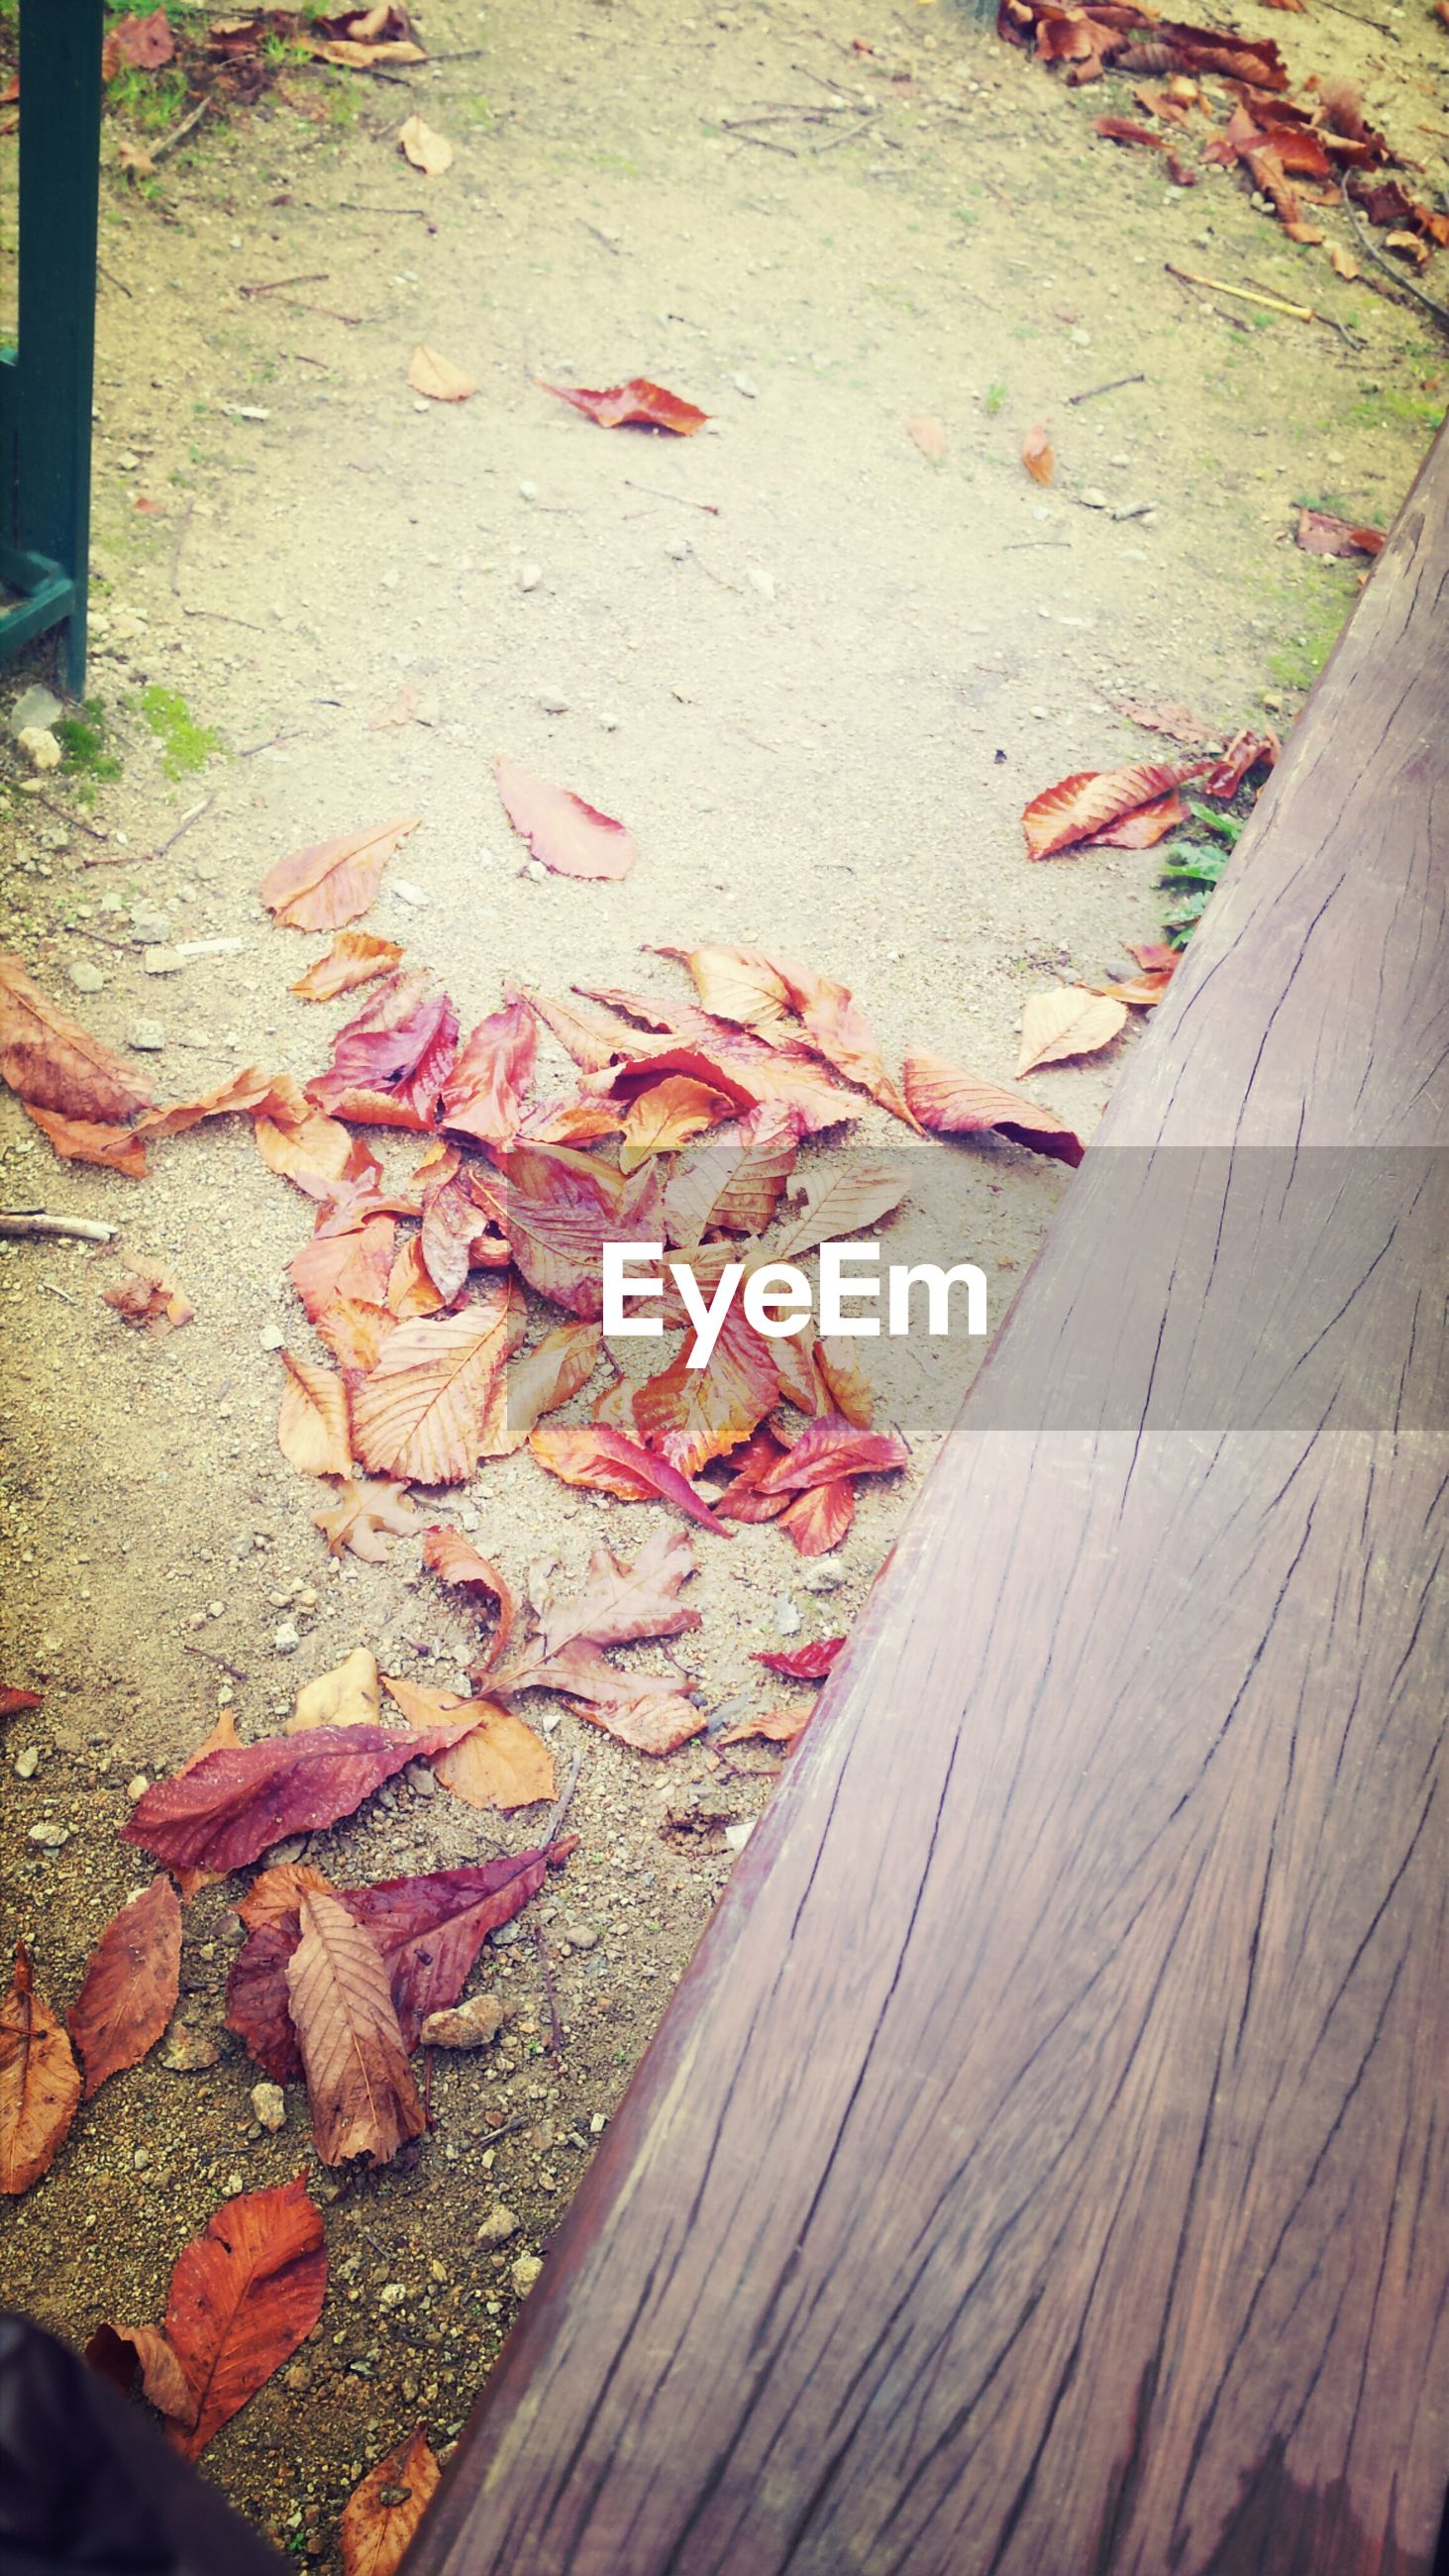 high angle view, autumn, leaf, wood - material, red, change, fallen, leaves, season, abundance, dry, day, outdoors, nature, wooden, ground, no people, sunlight, close-up, falling